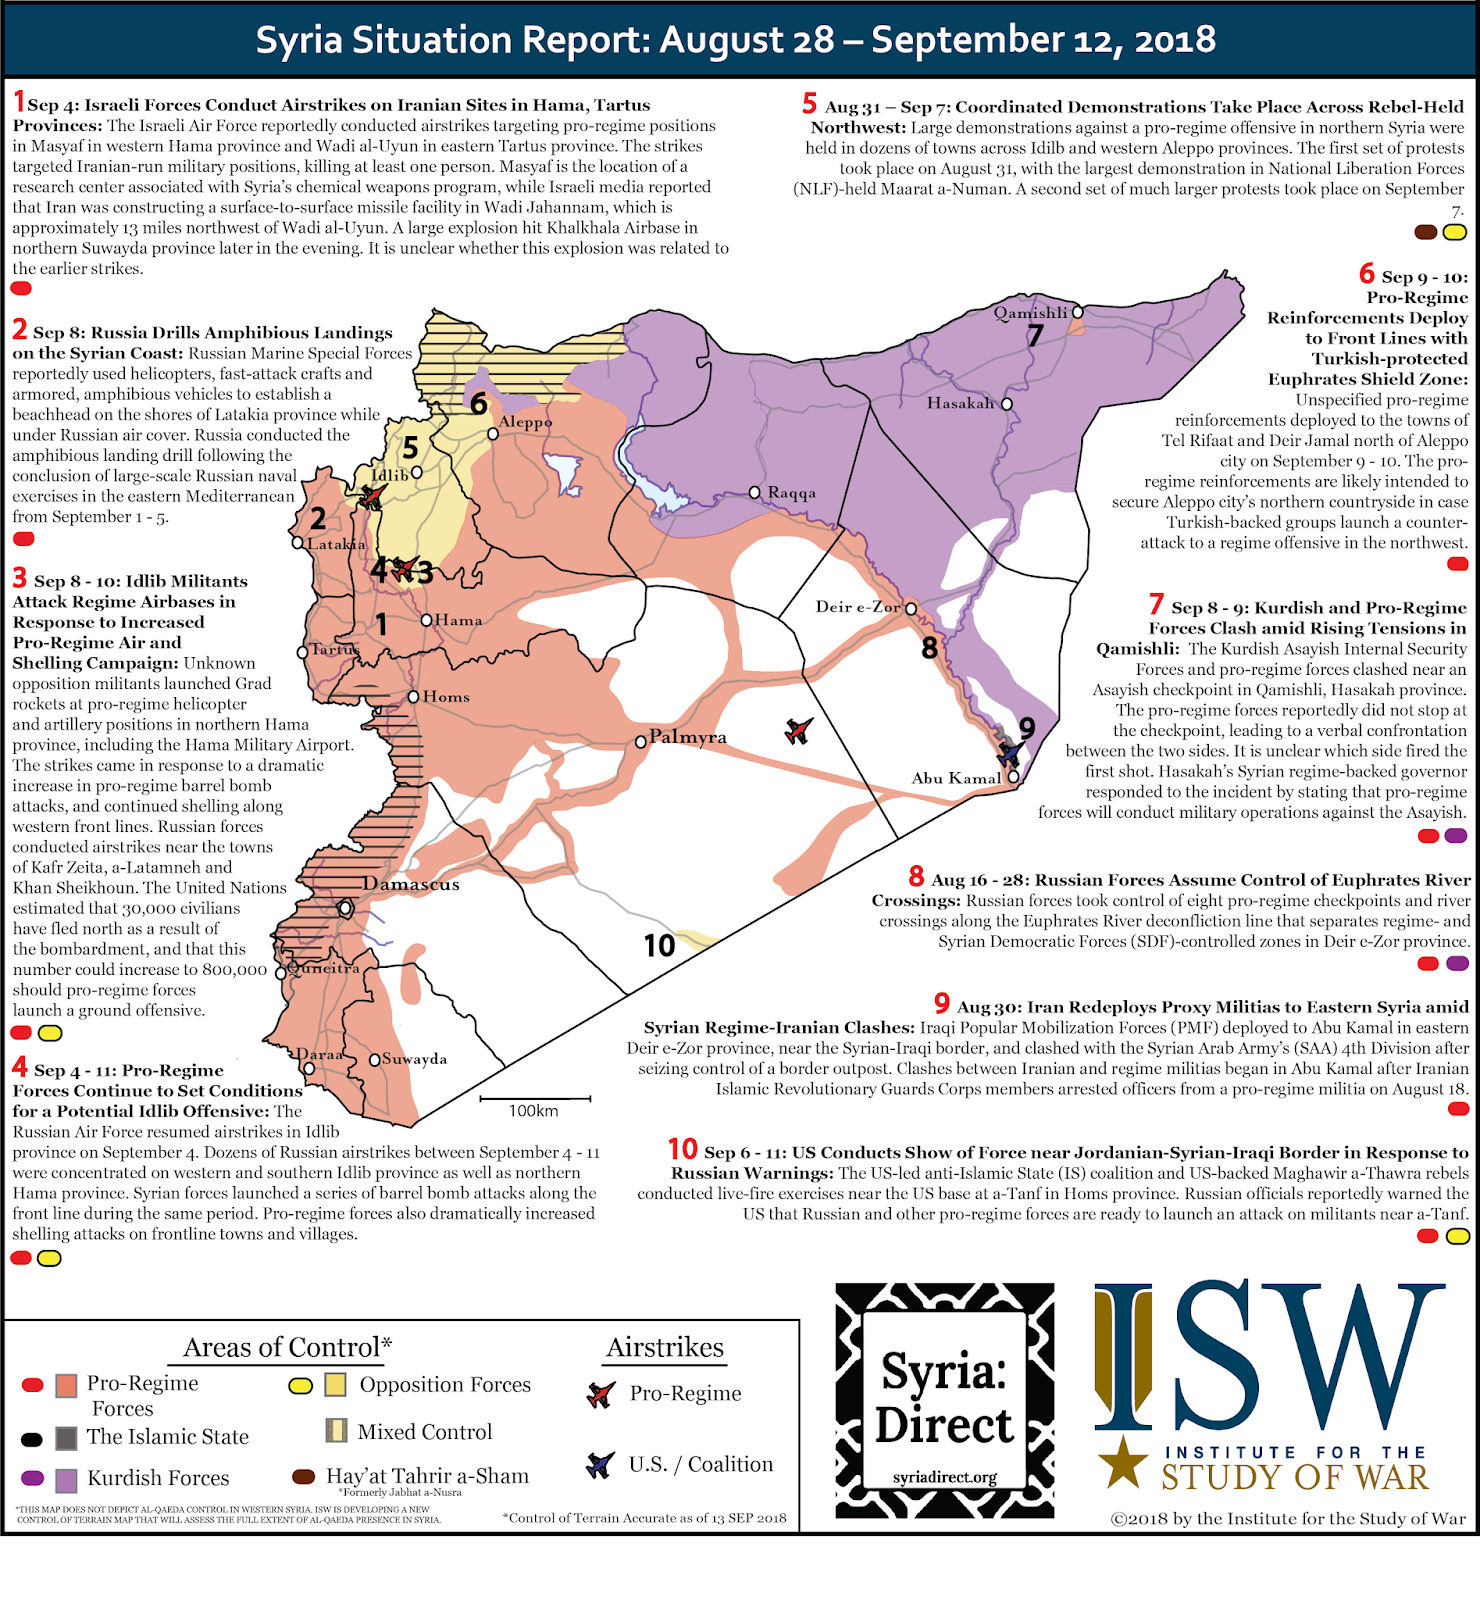 the map depicts significant developments in the war in syria during the period august 28 september 12 2018